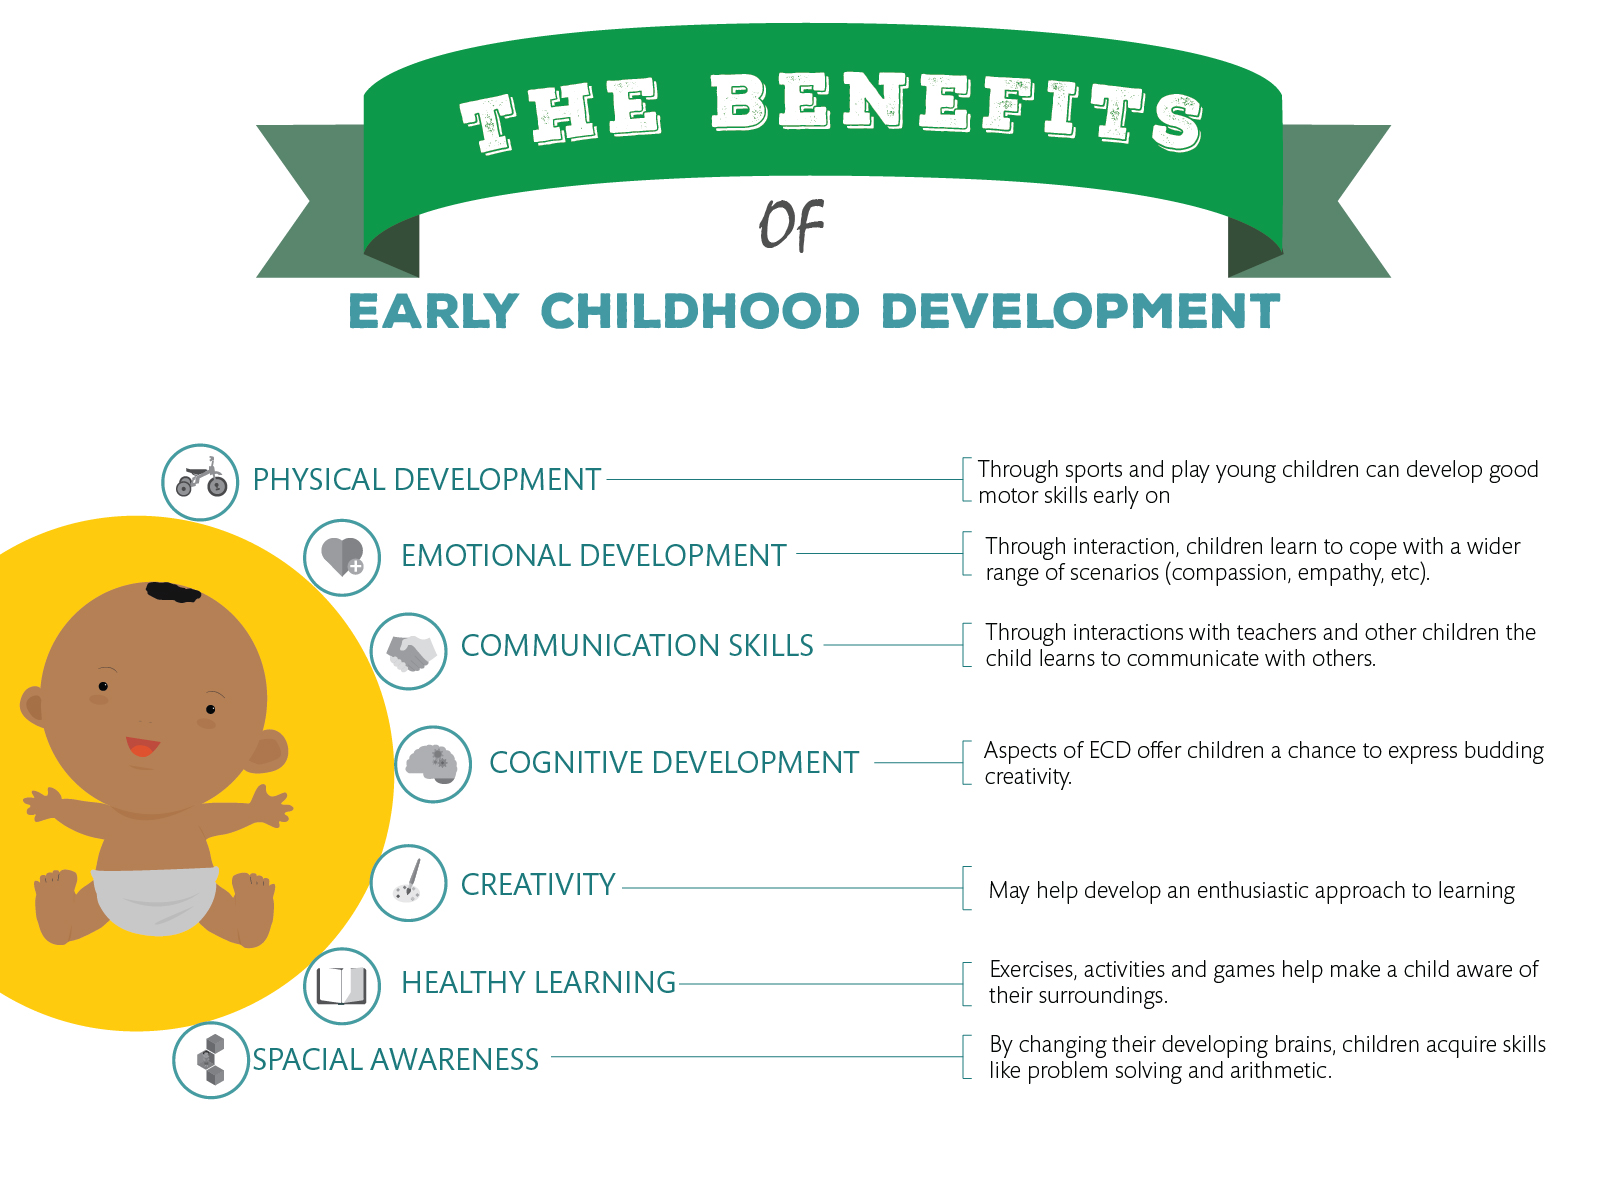 The advantages of Early Childhood Development